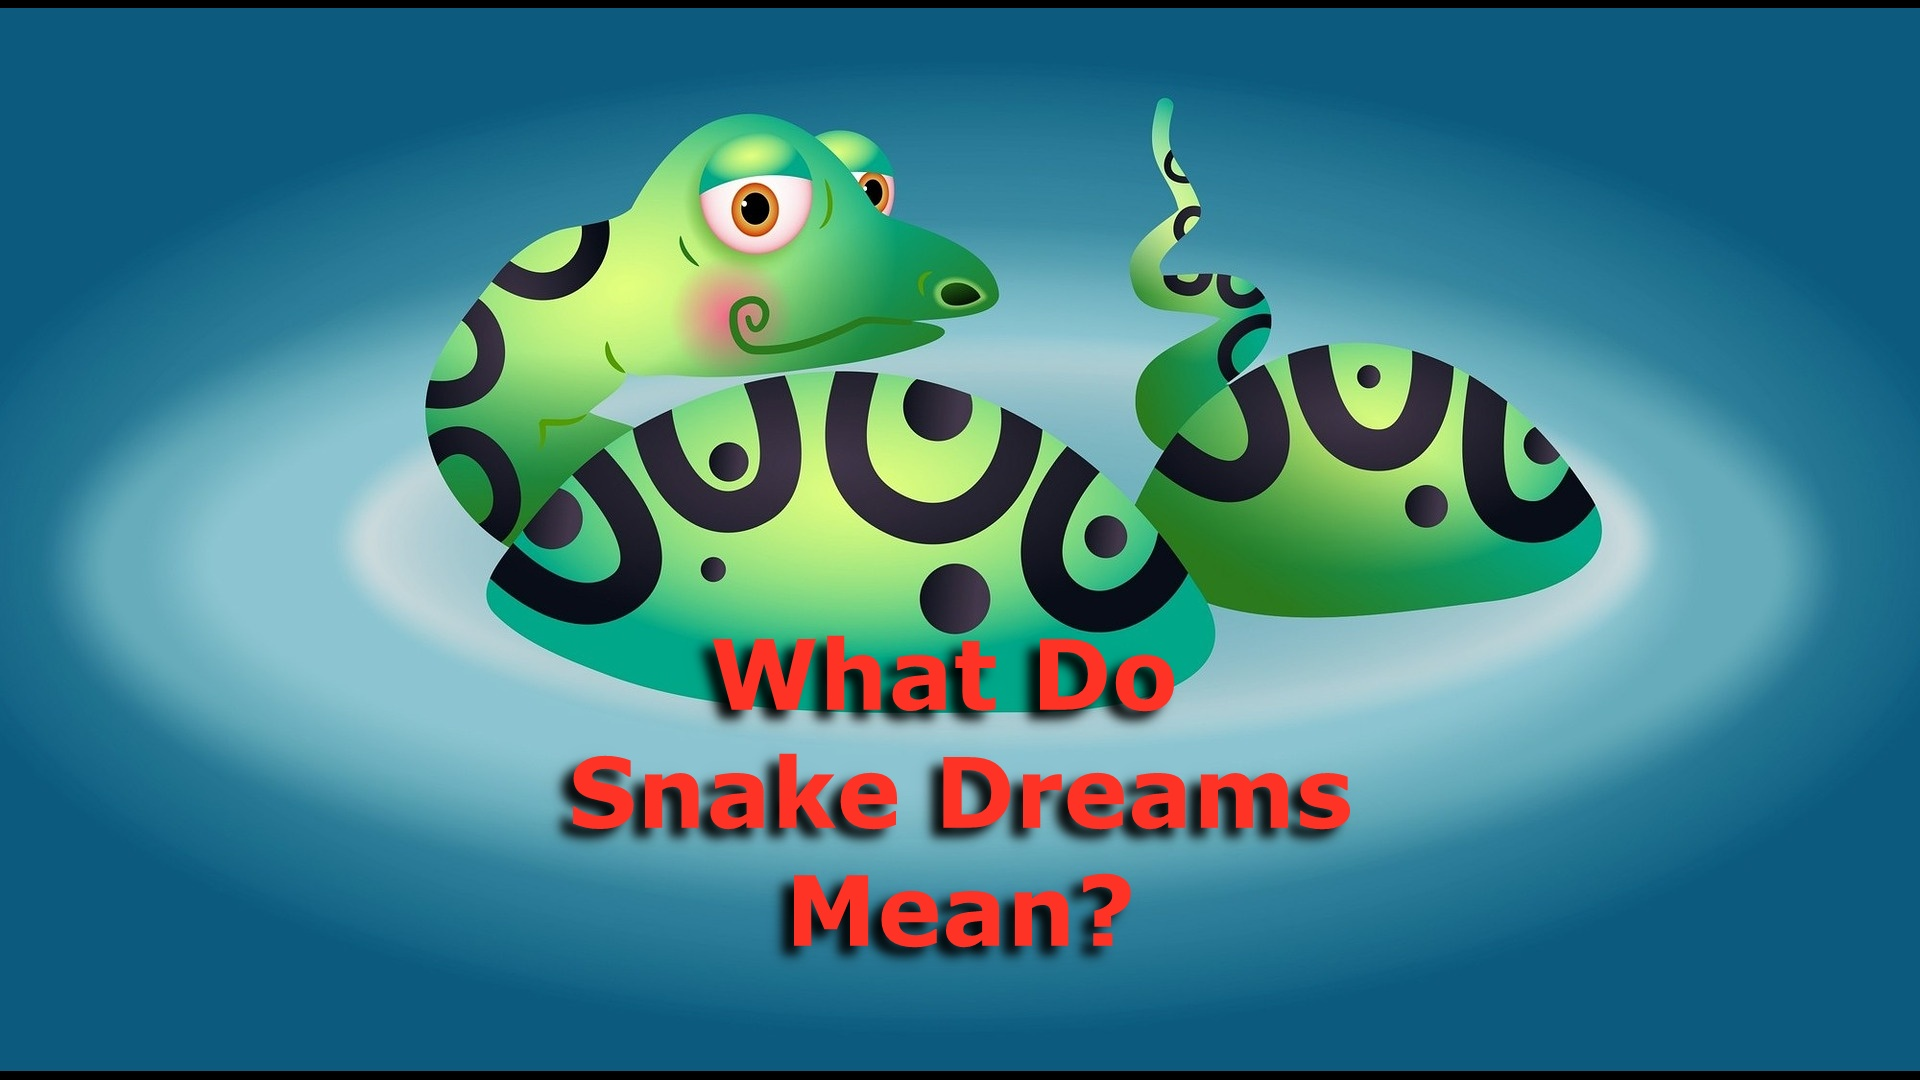 What do snake dreams mean?